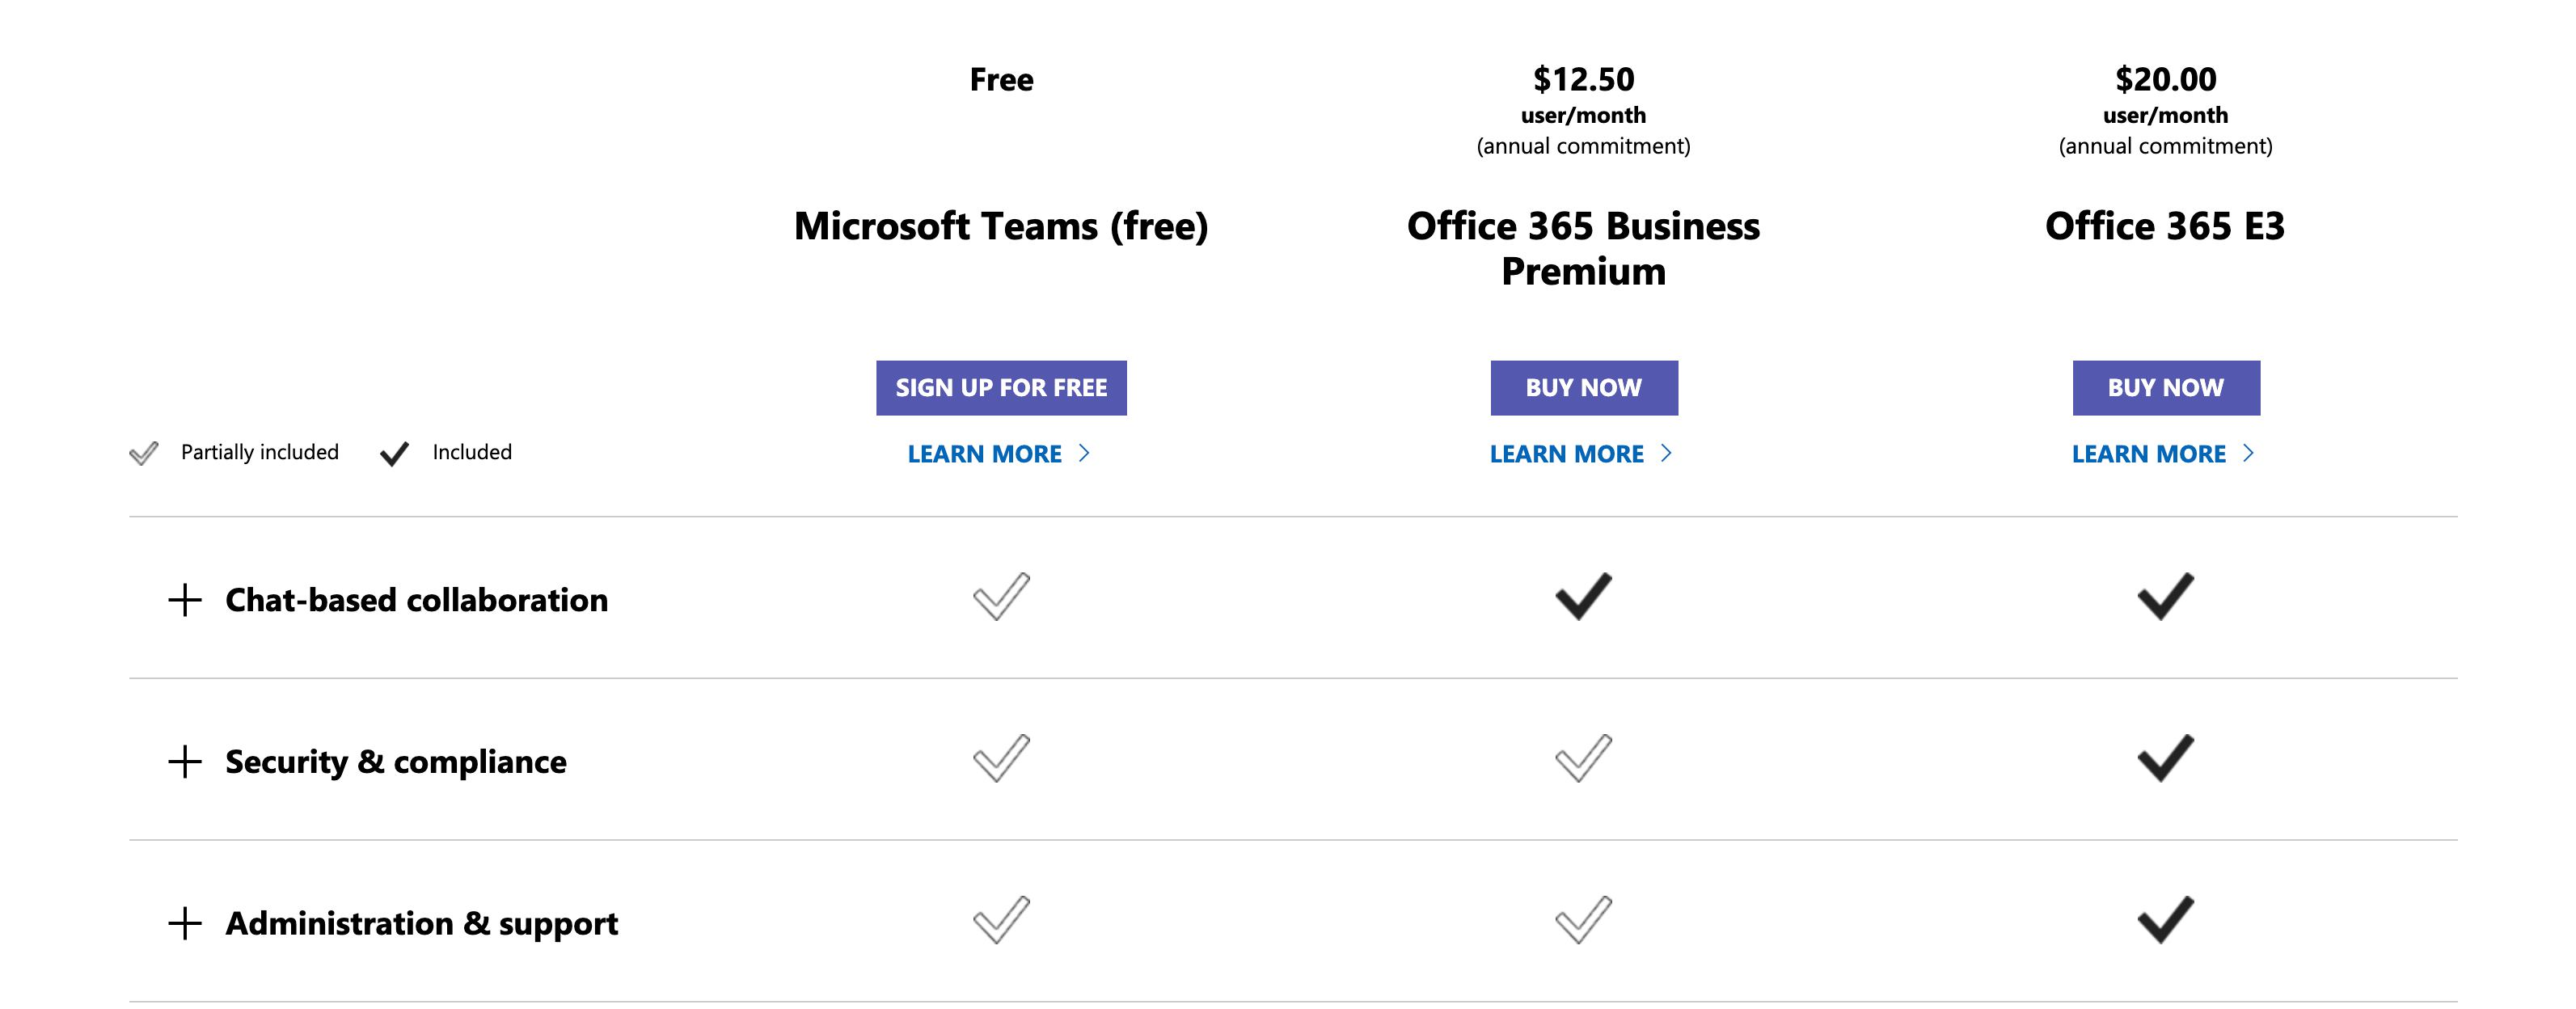 Microsoft Teams company communication tool pricing